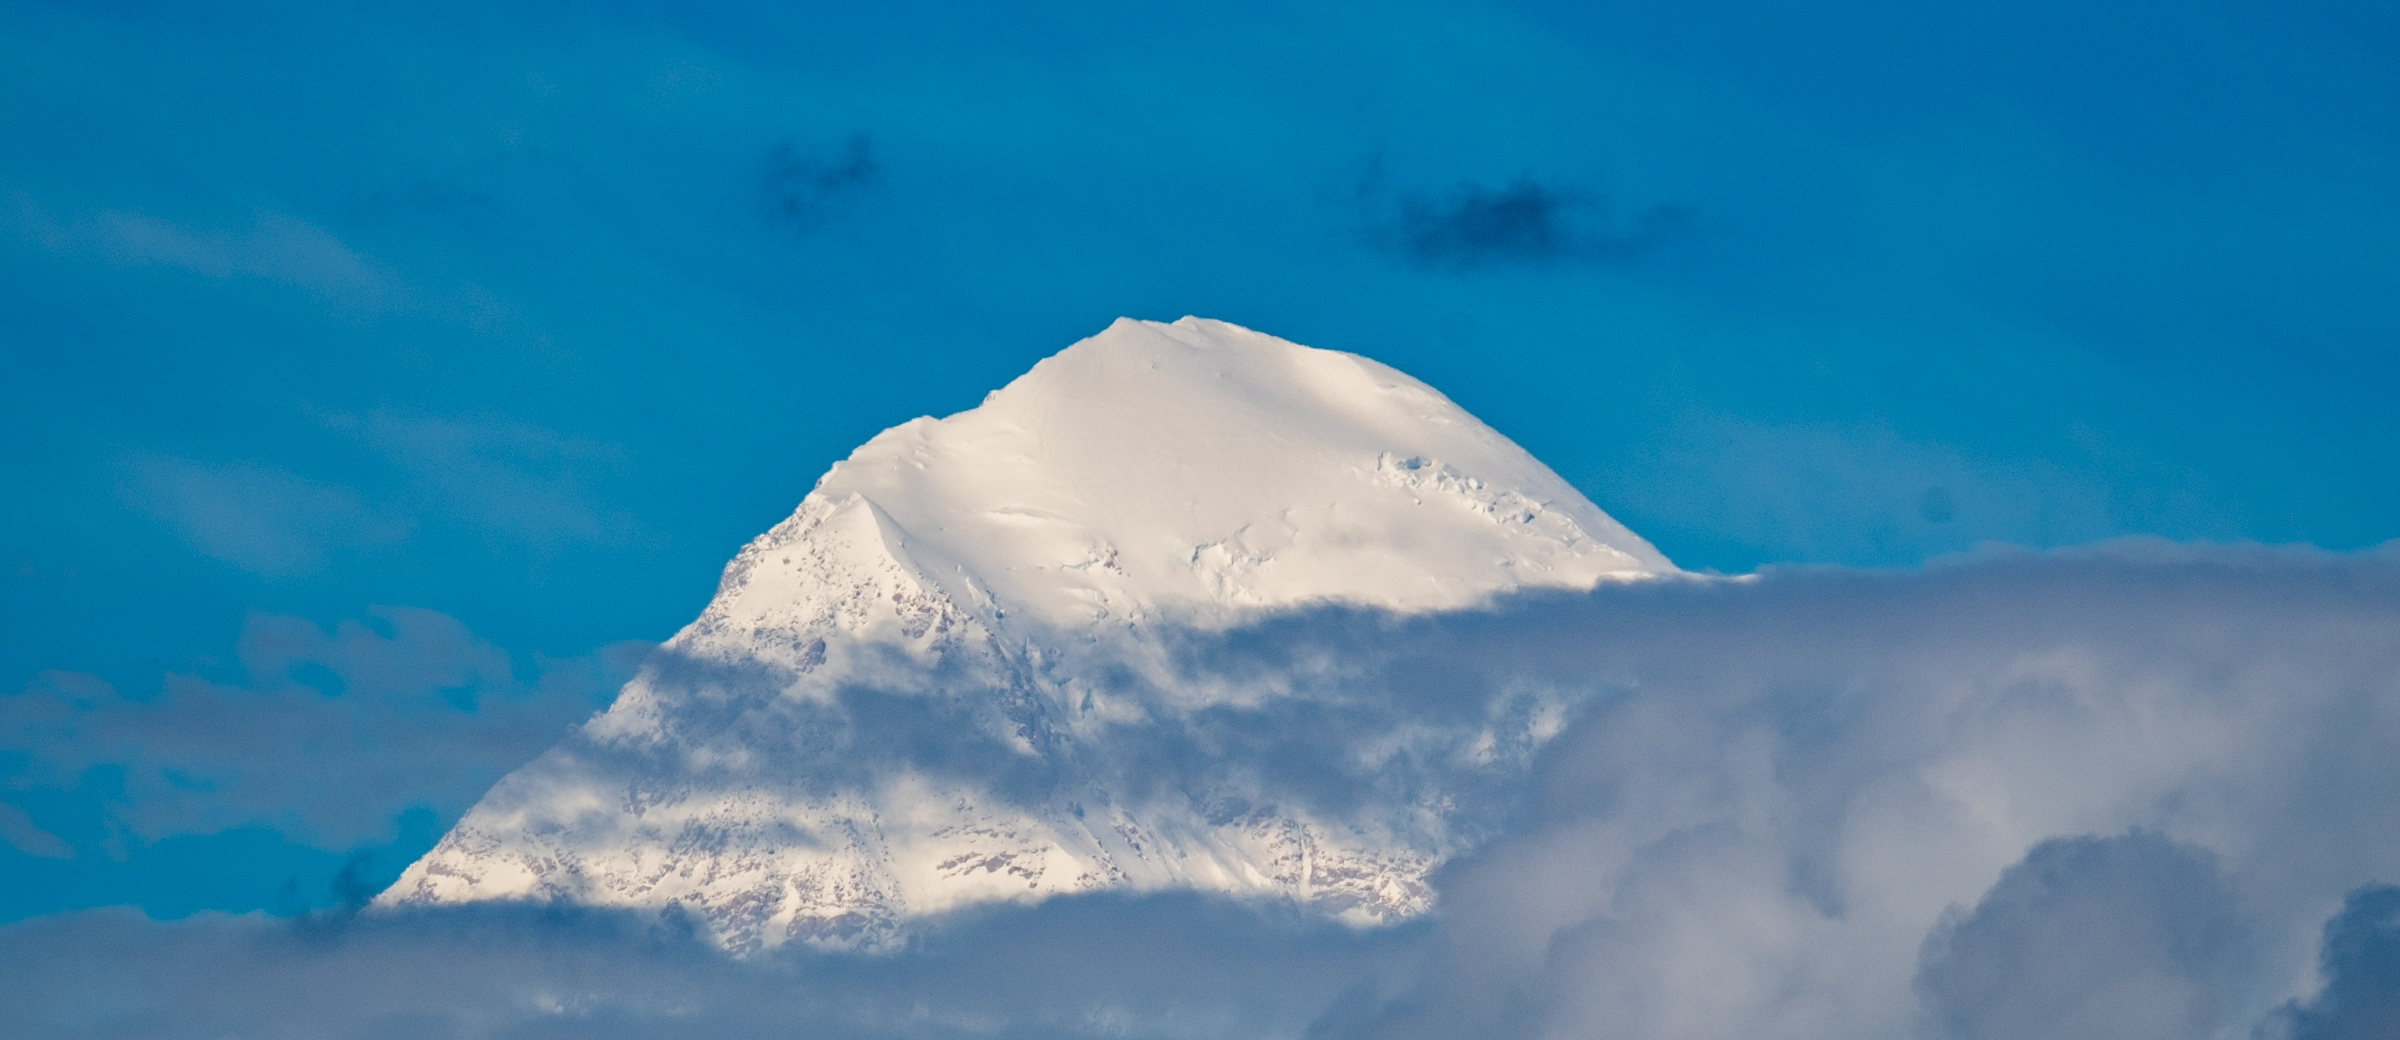 "Denali, meaning ""The High One"" or ""The Great One"" in native Athabscan, is the highest peak in North America, standing at 20,320 feet above sea level."